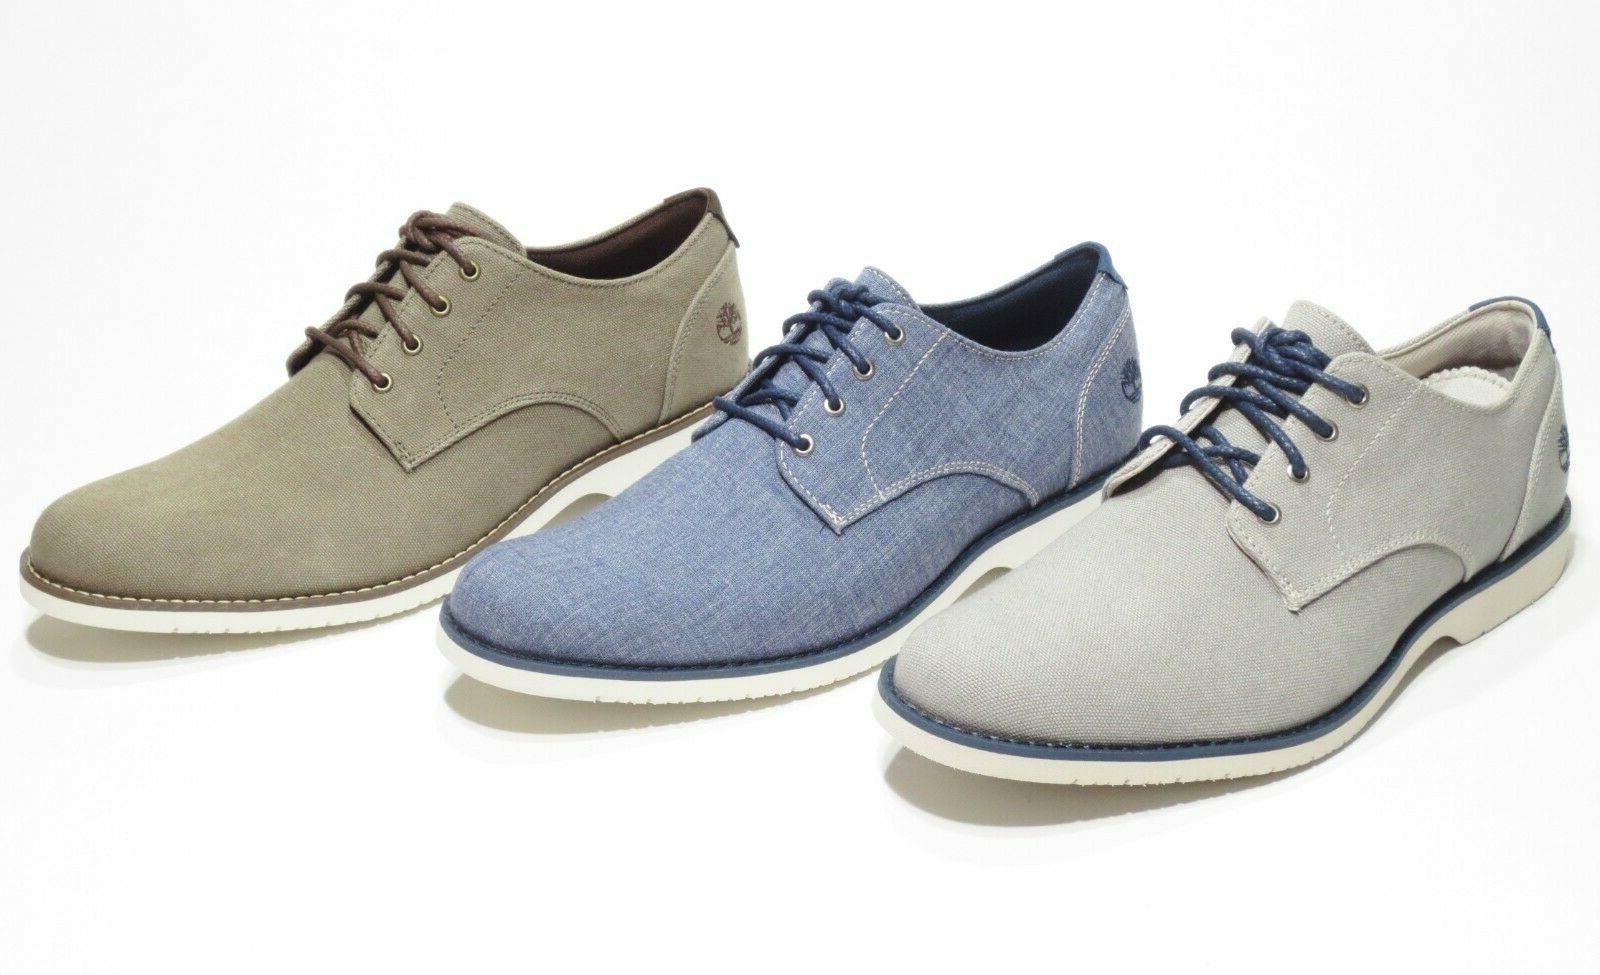 Timberland Oxford with Blue